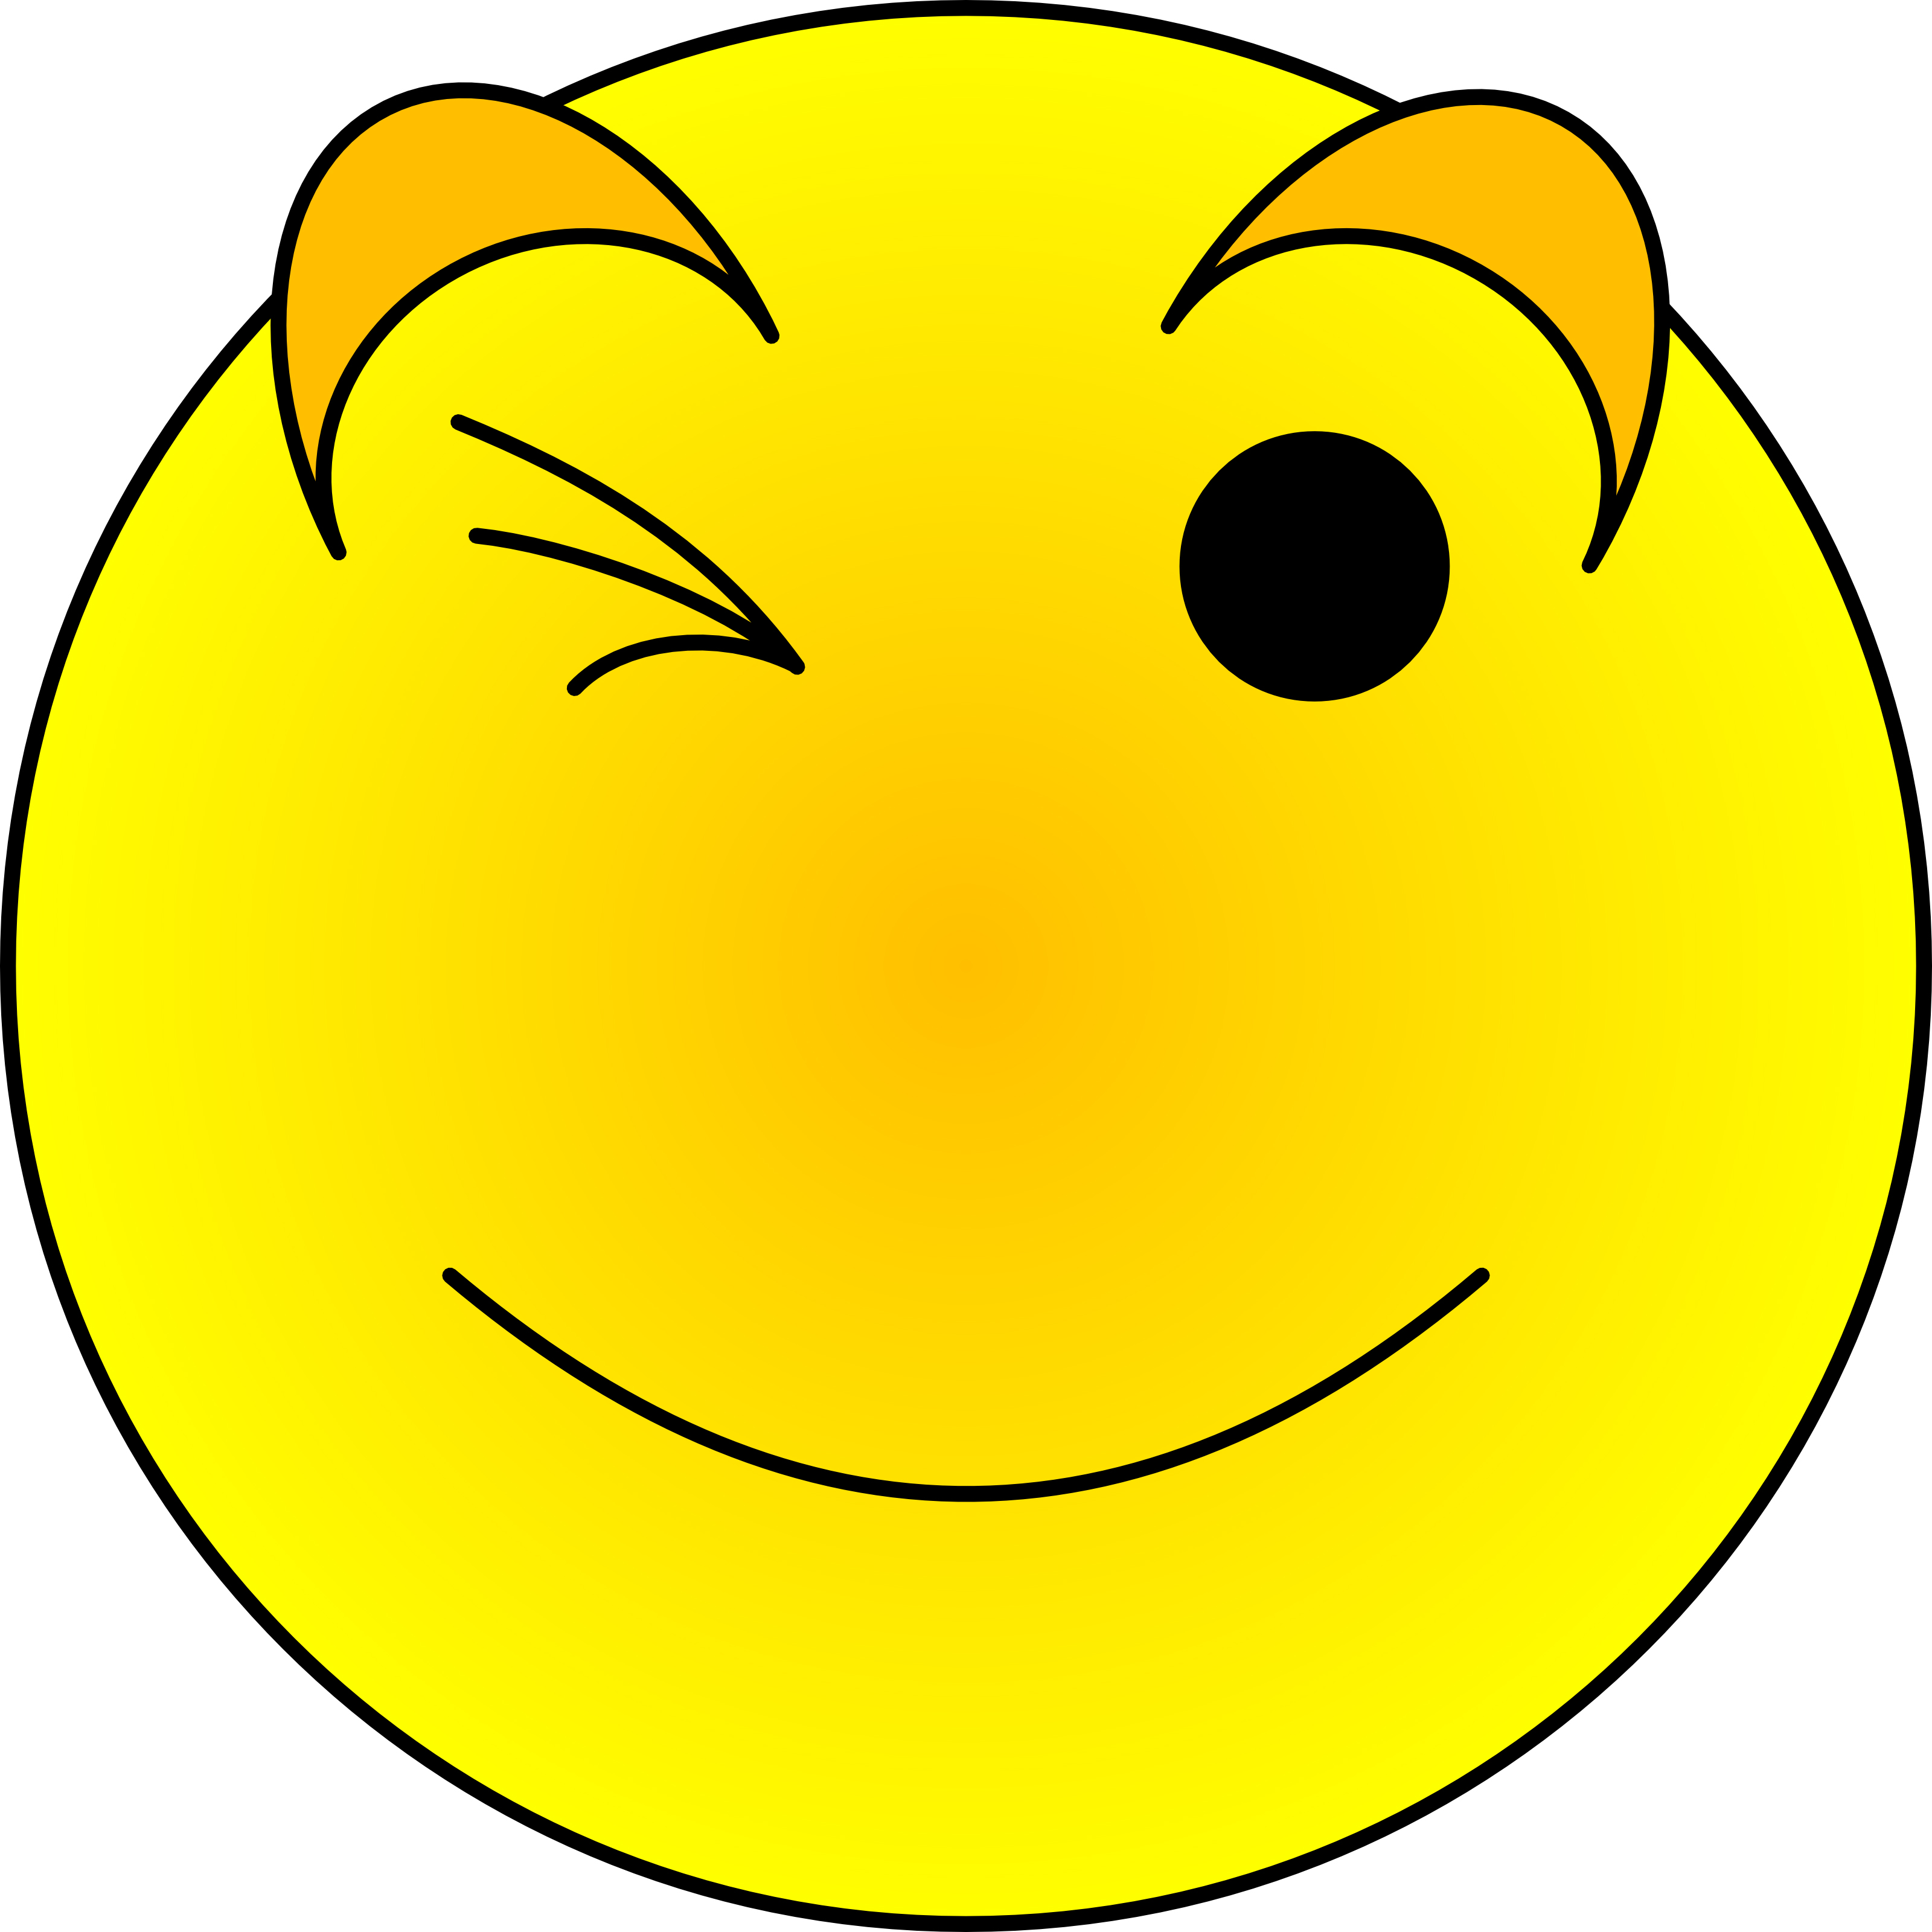 3200x3200 Winking Emoji 0 Images About Clip Art On Smiley Faces Free 2